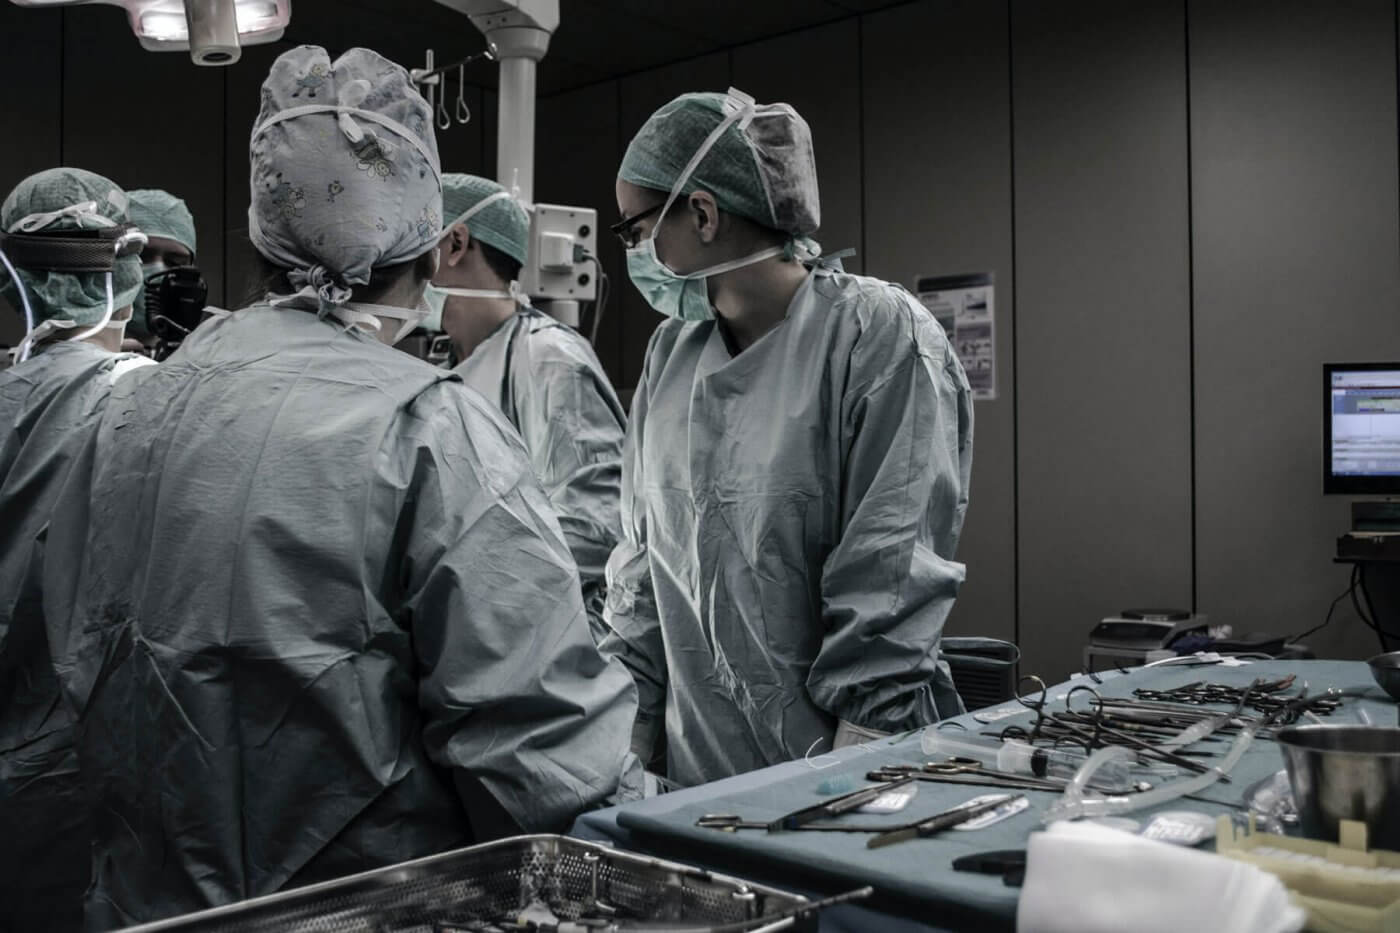 Doctors in a surgery room